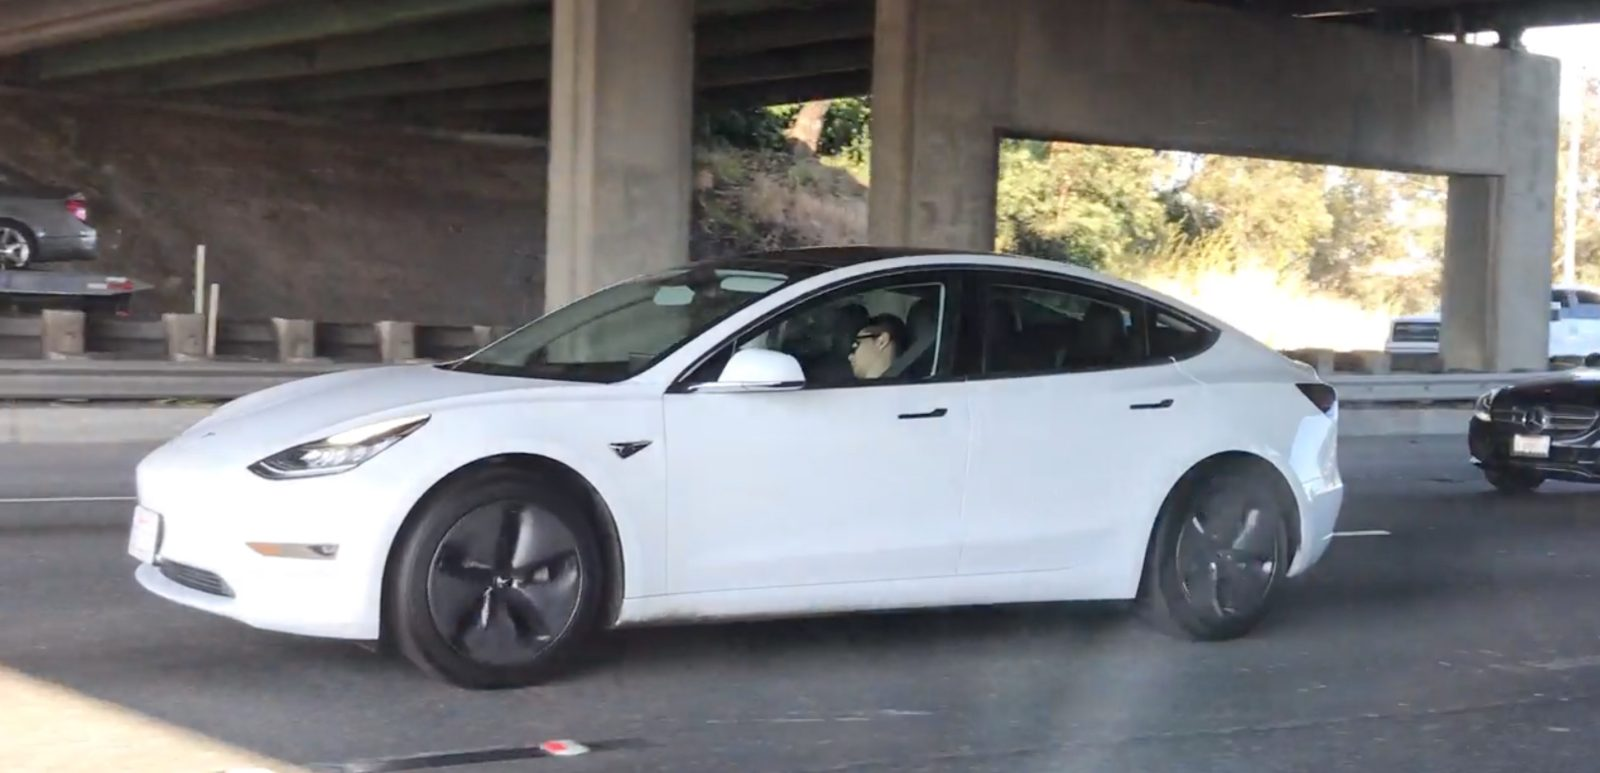 Tesla drives are getting caught sleeping on Autopilot – blame people, not Autopilot